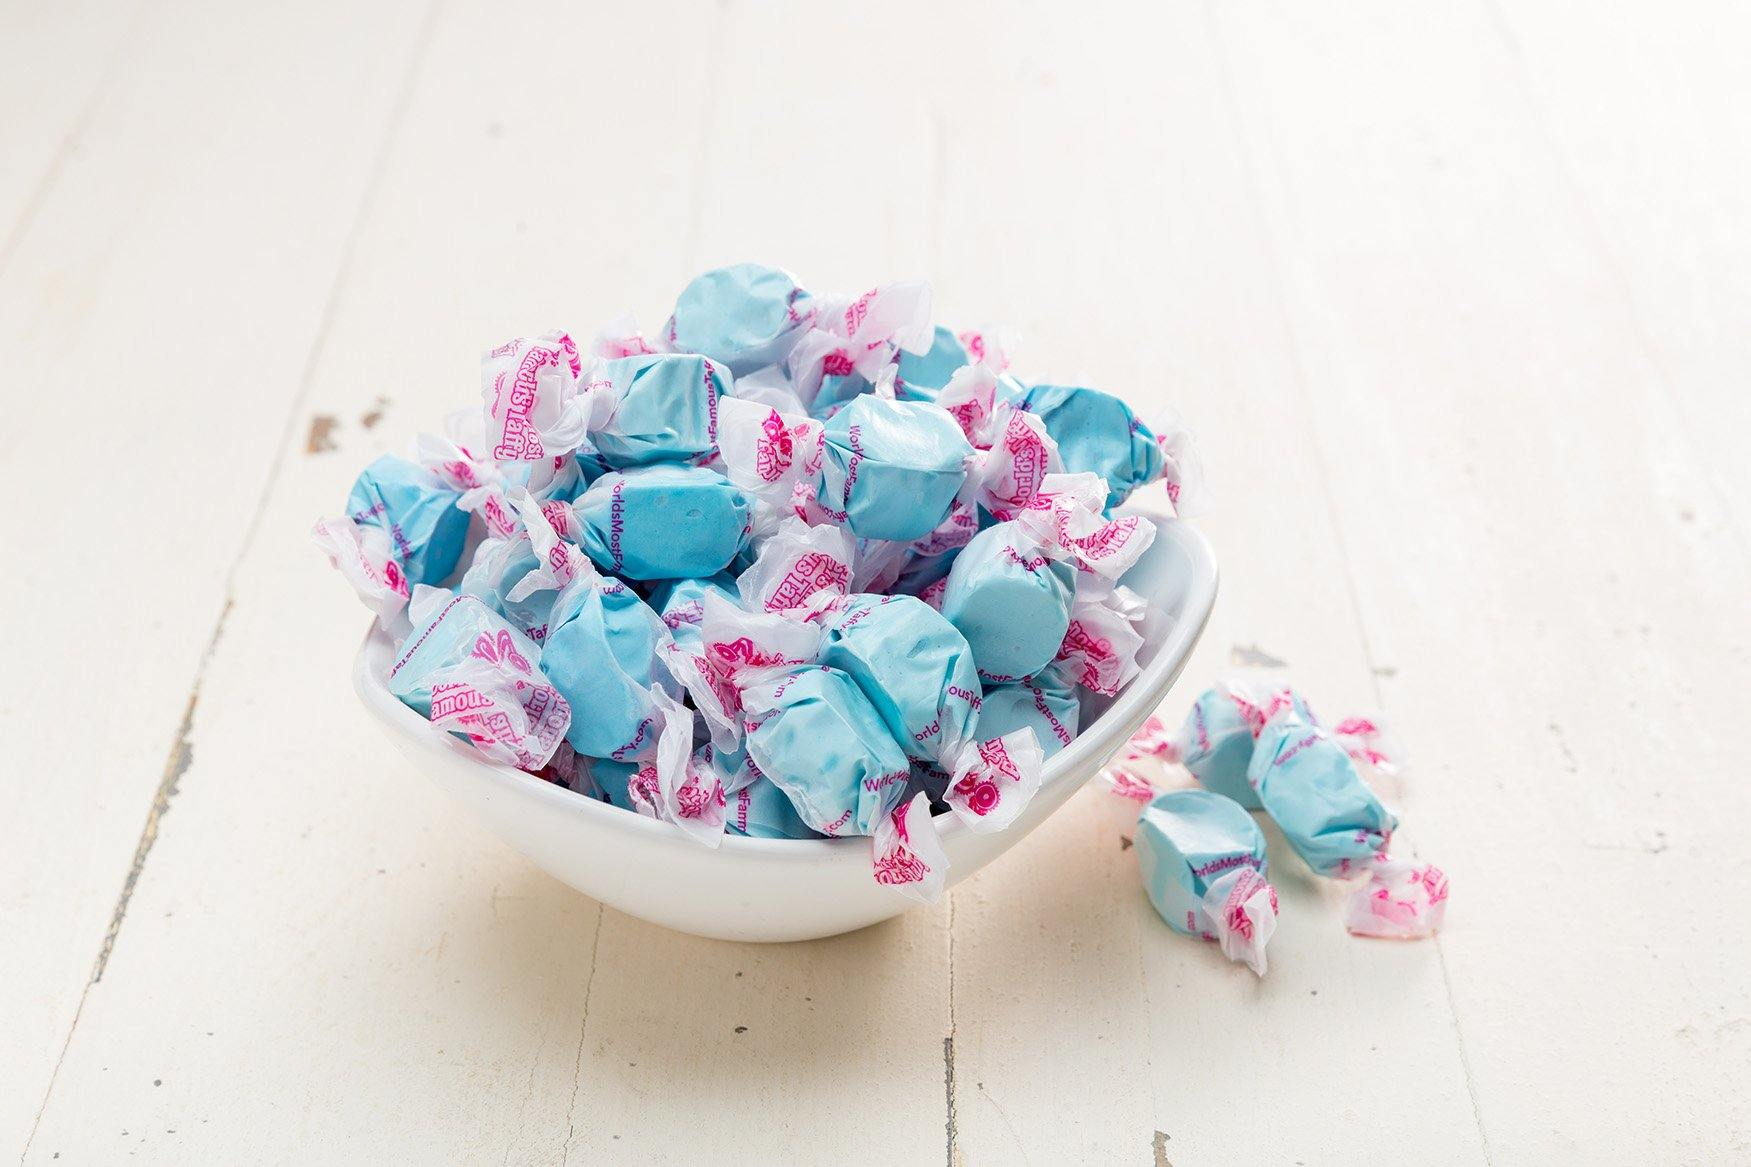 cotton-candy-our-products-zenos-worlds-most-famous-taffy-639131.jpg?v=1603832572